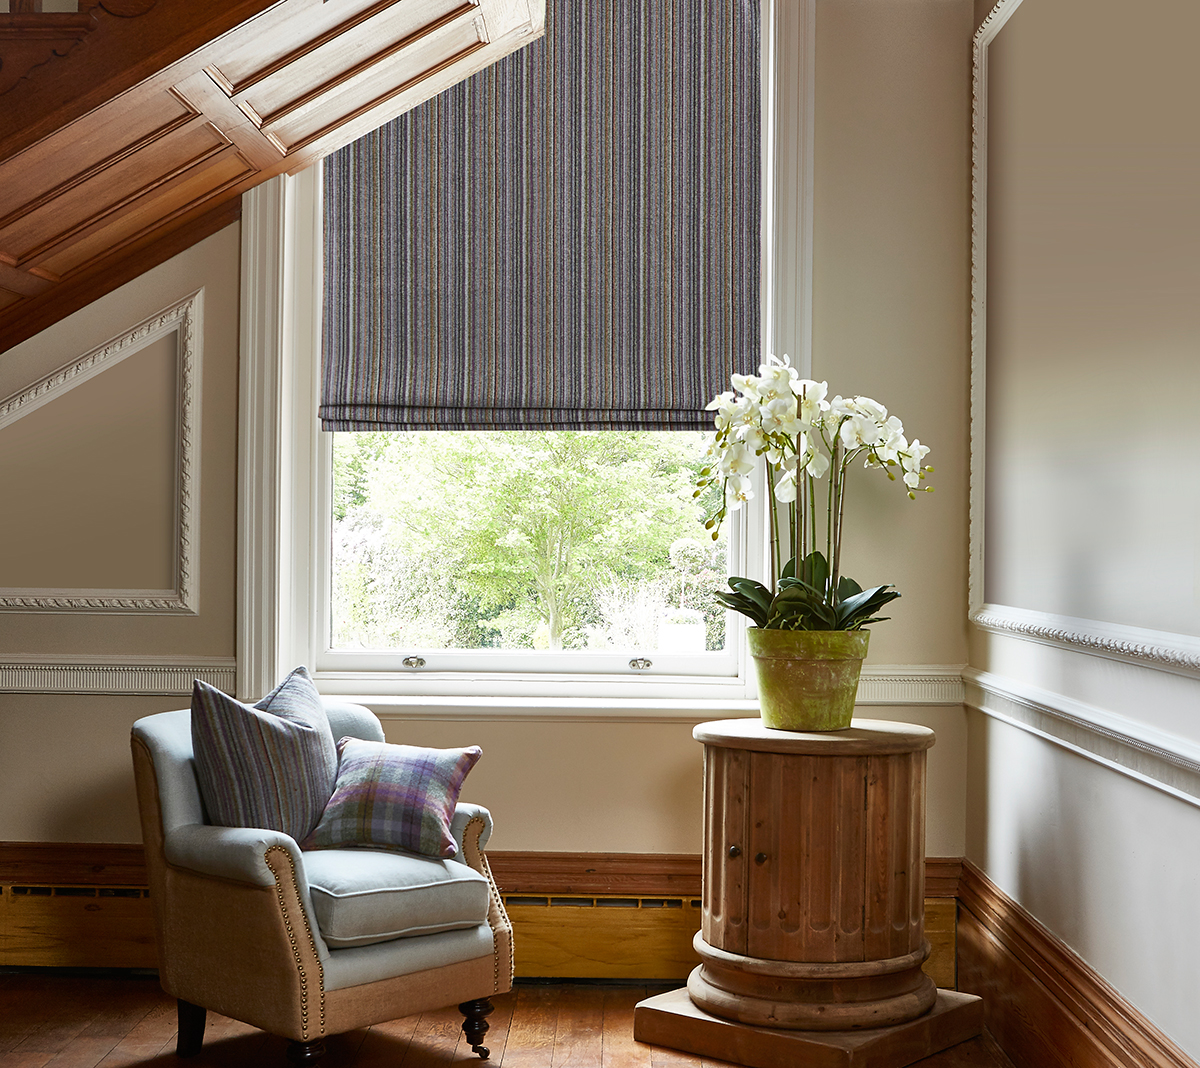 Drummond Heather Roman Blind from SLX